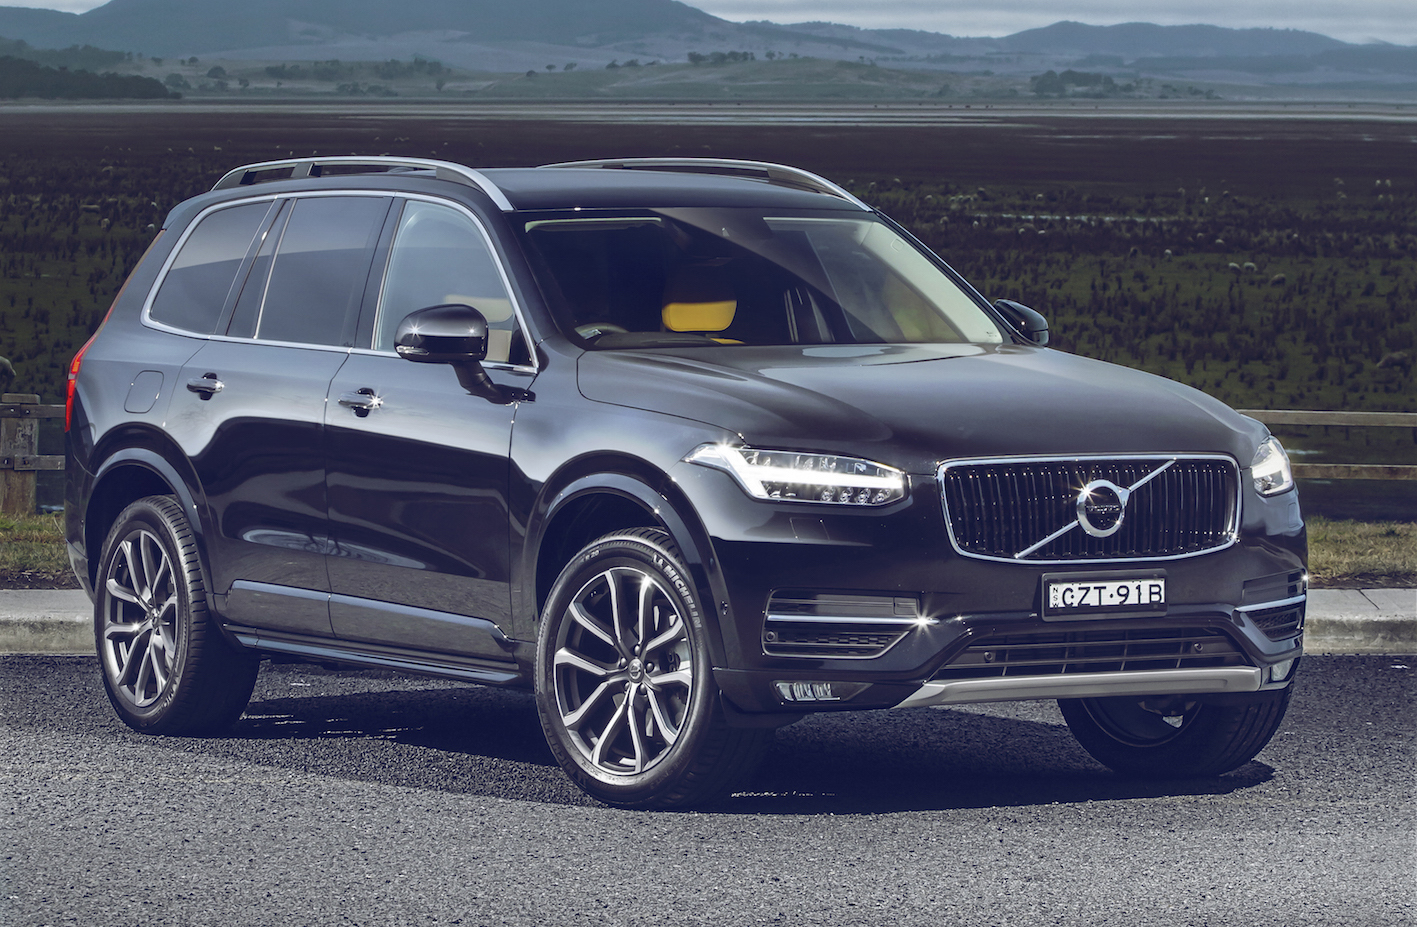 Recalls: Volvo XC90, Foton Tunland, Fiat Freemont, Range Rover And More